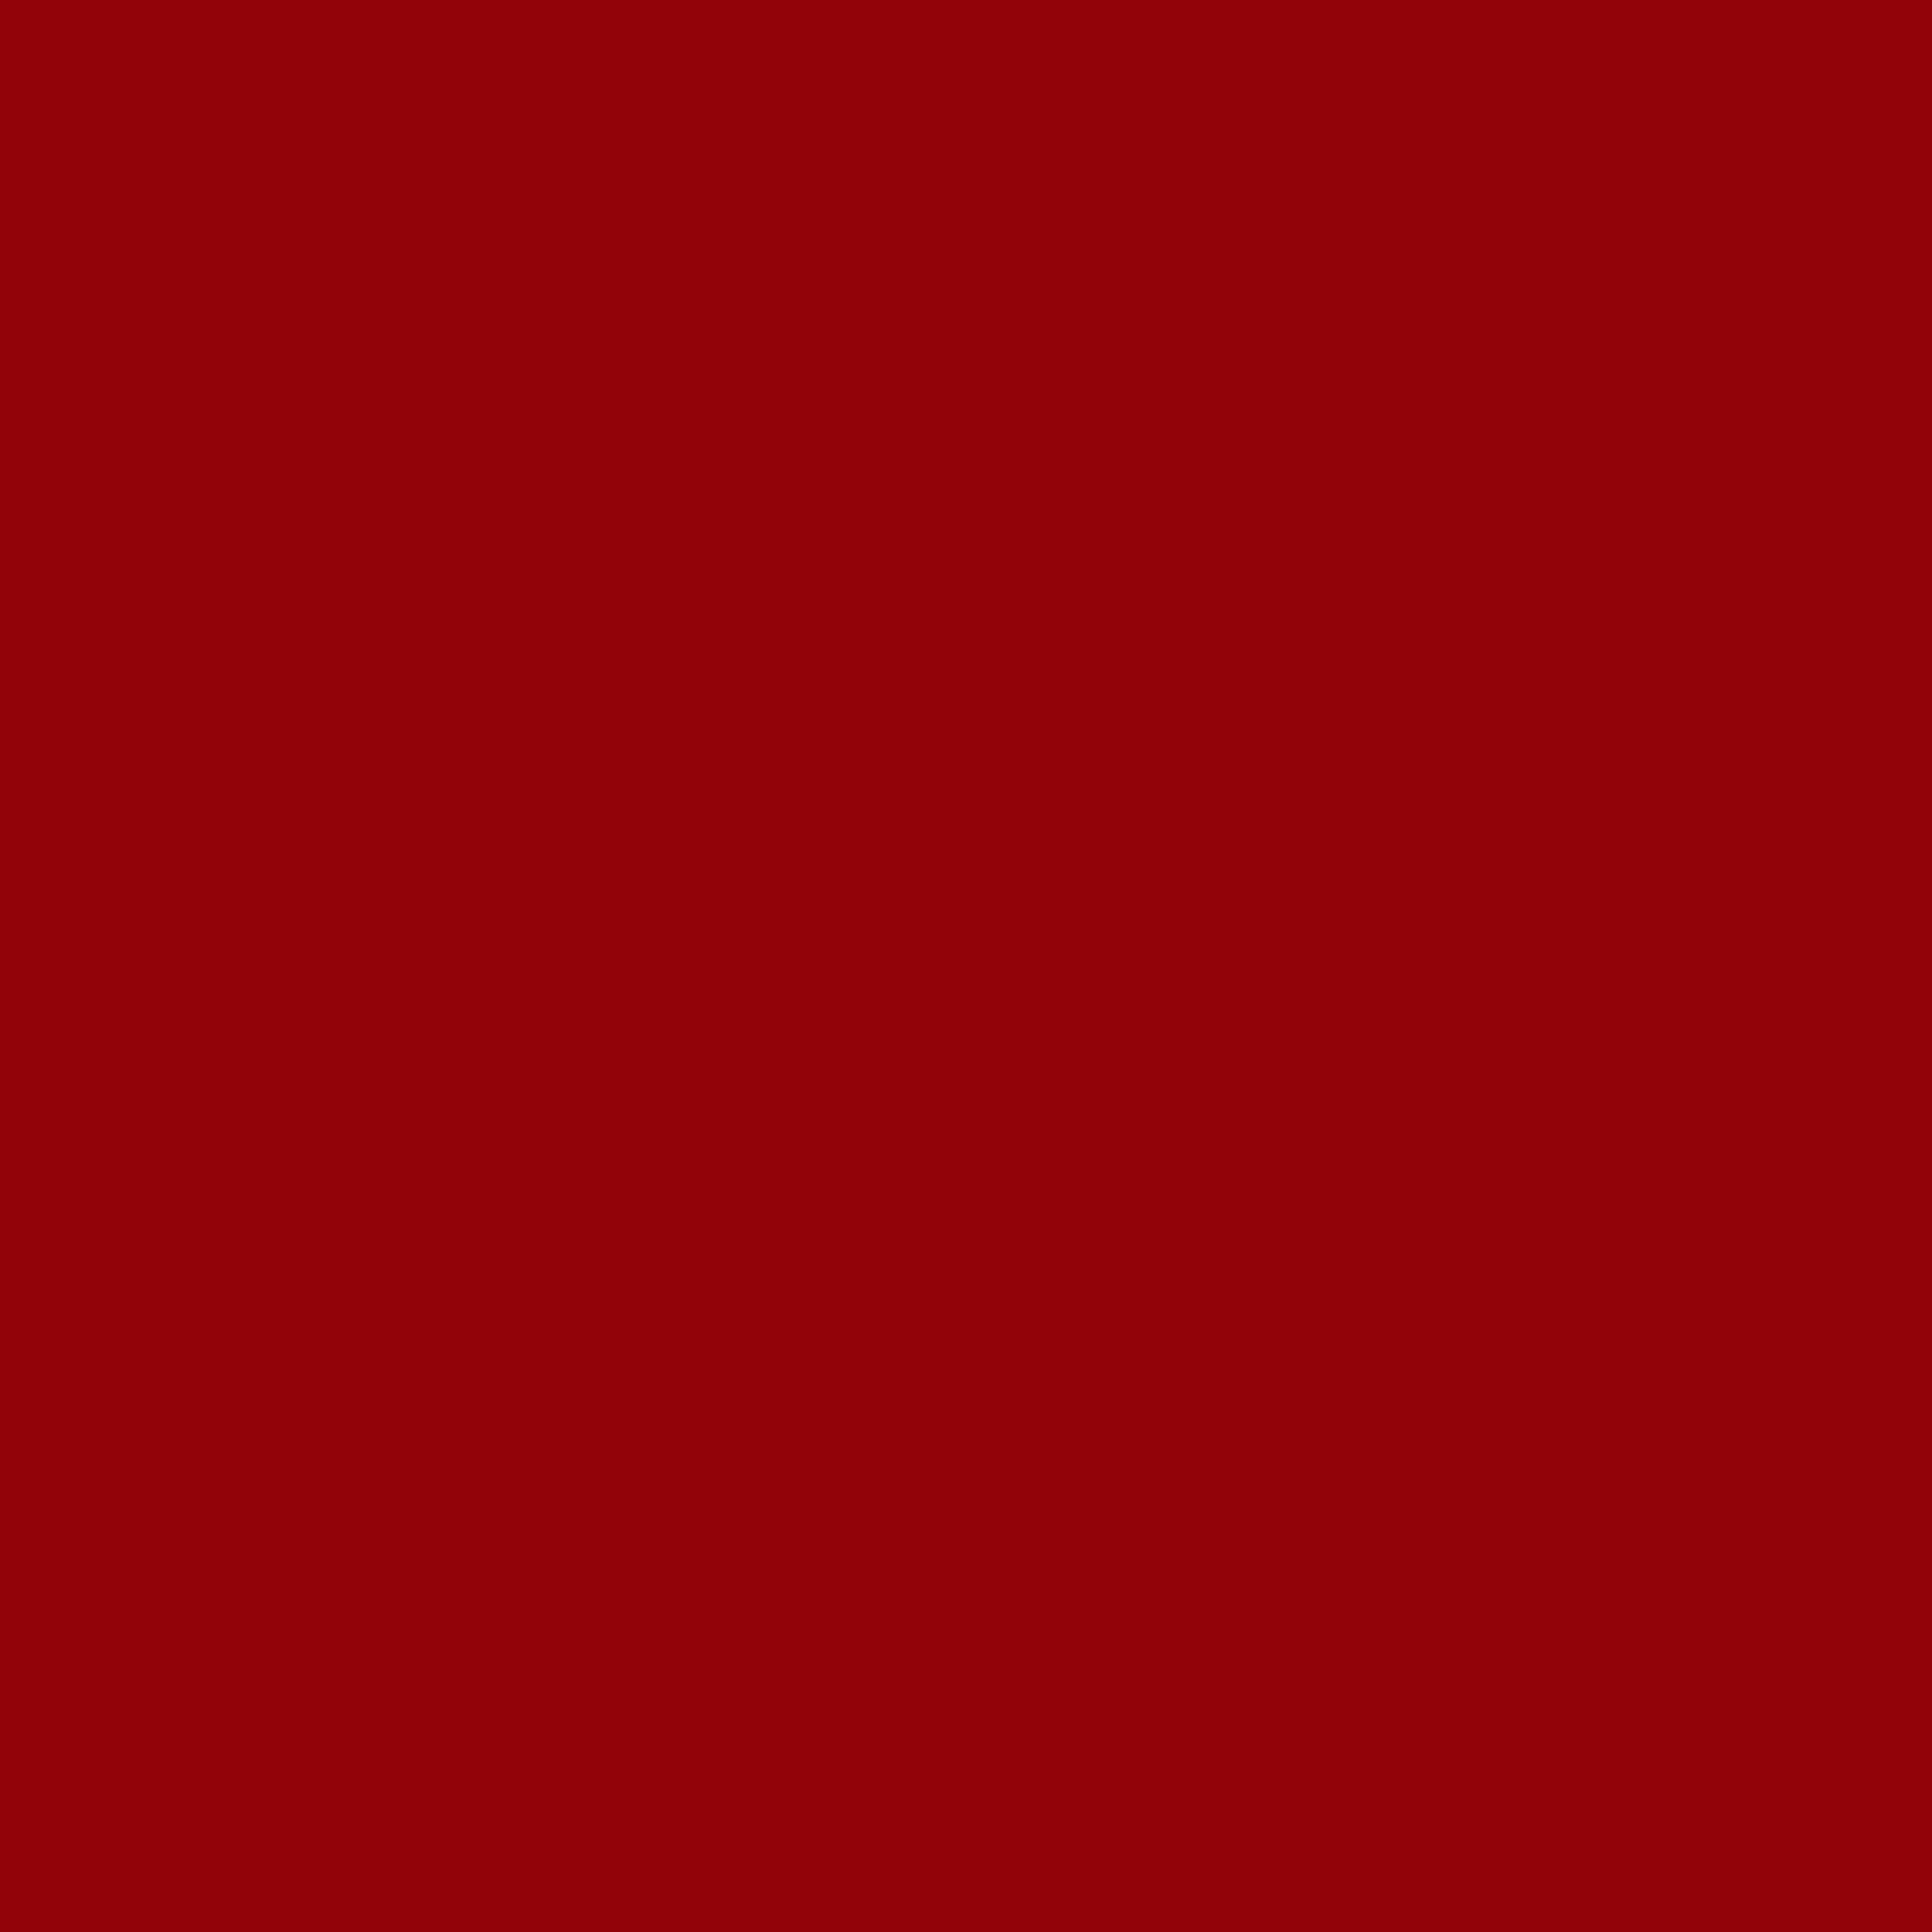 2732x2732 Sangria Solid Color Background